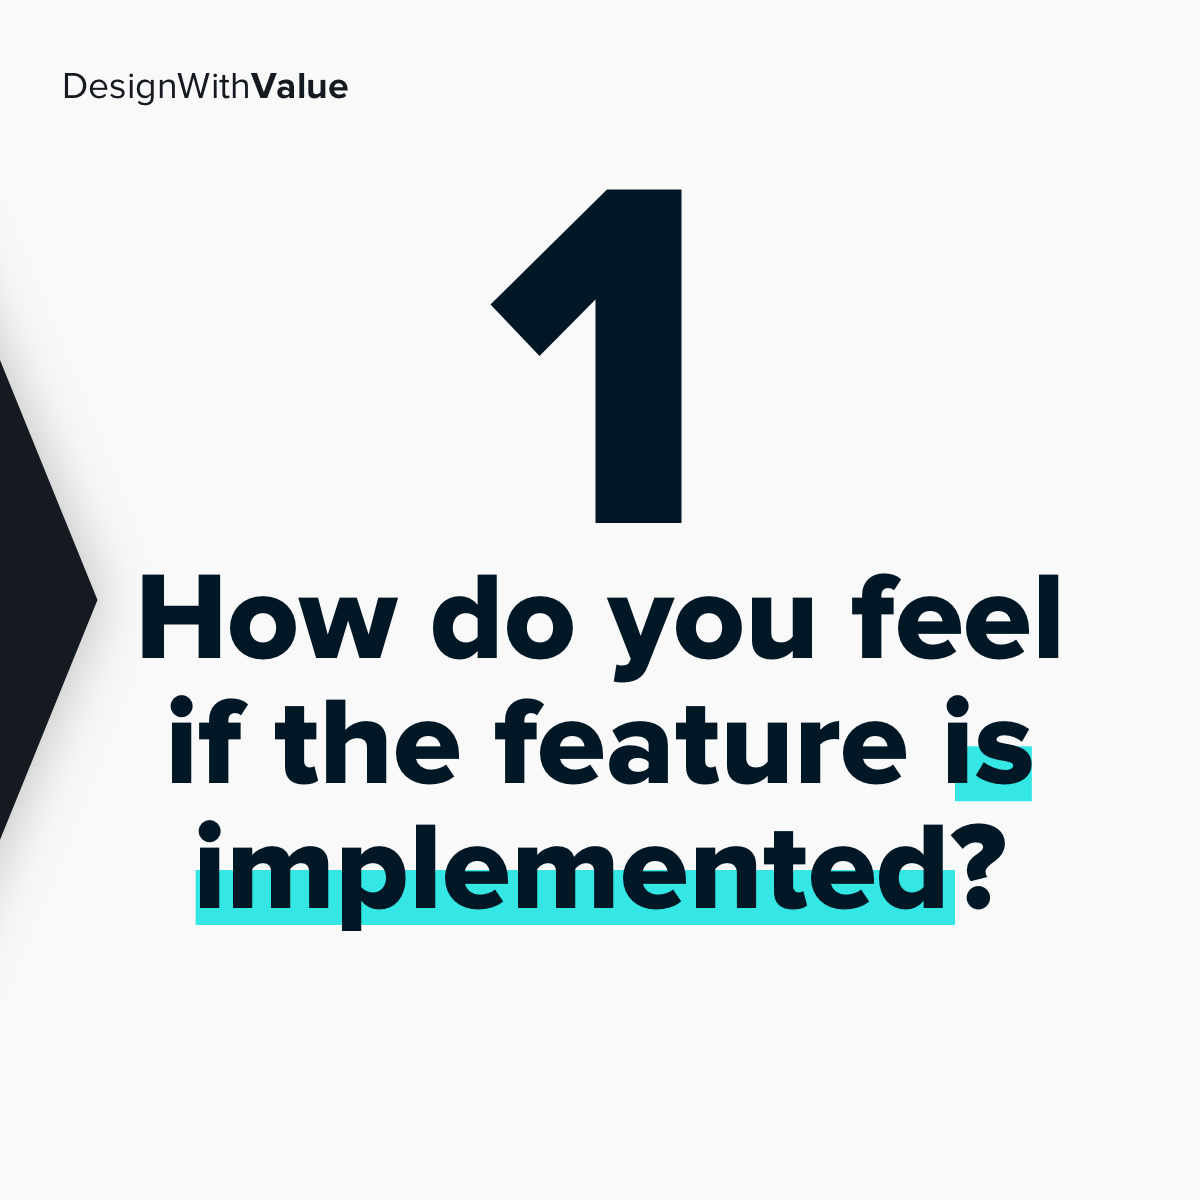 1. How do you feel if the feature is implemented?